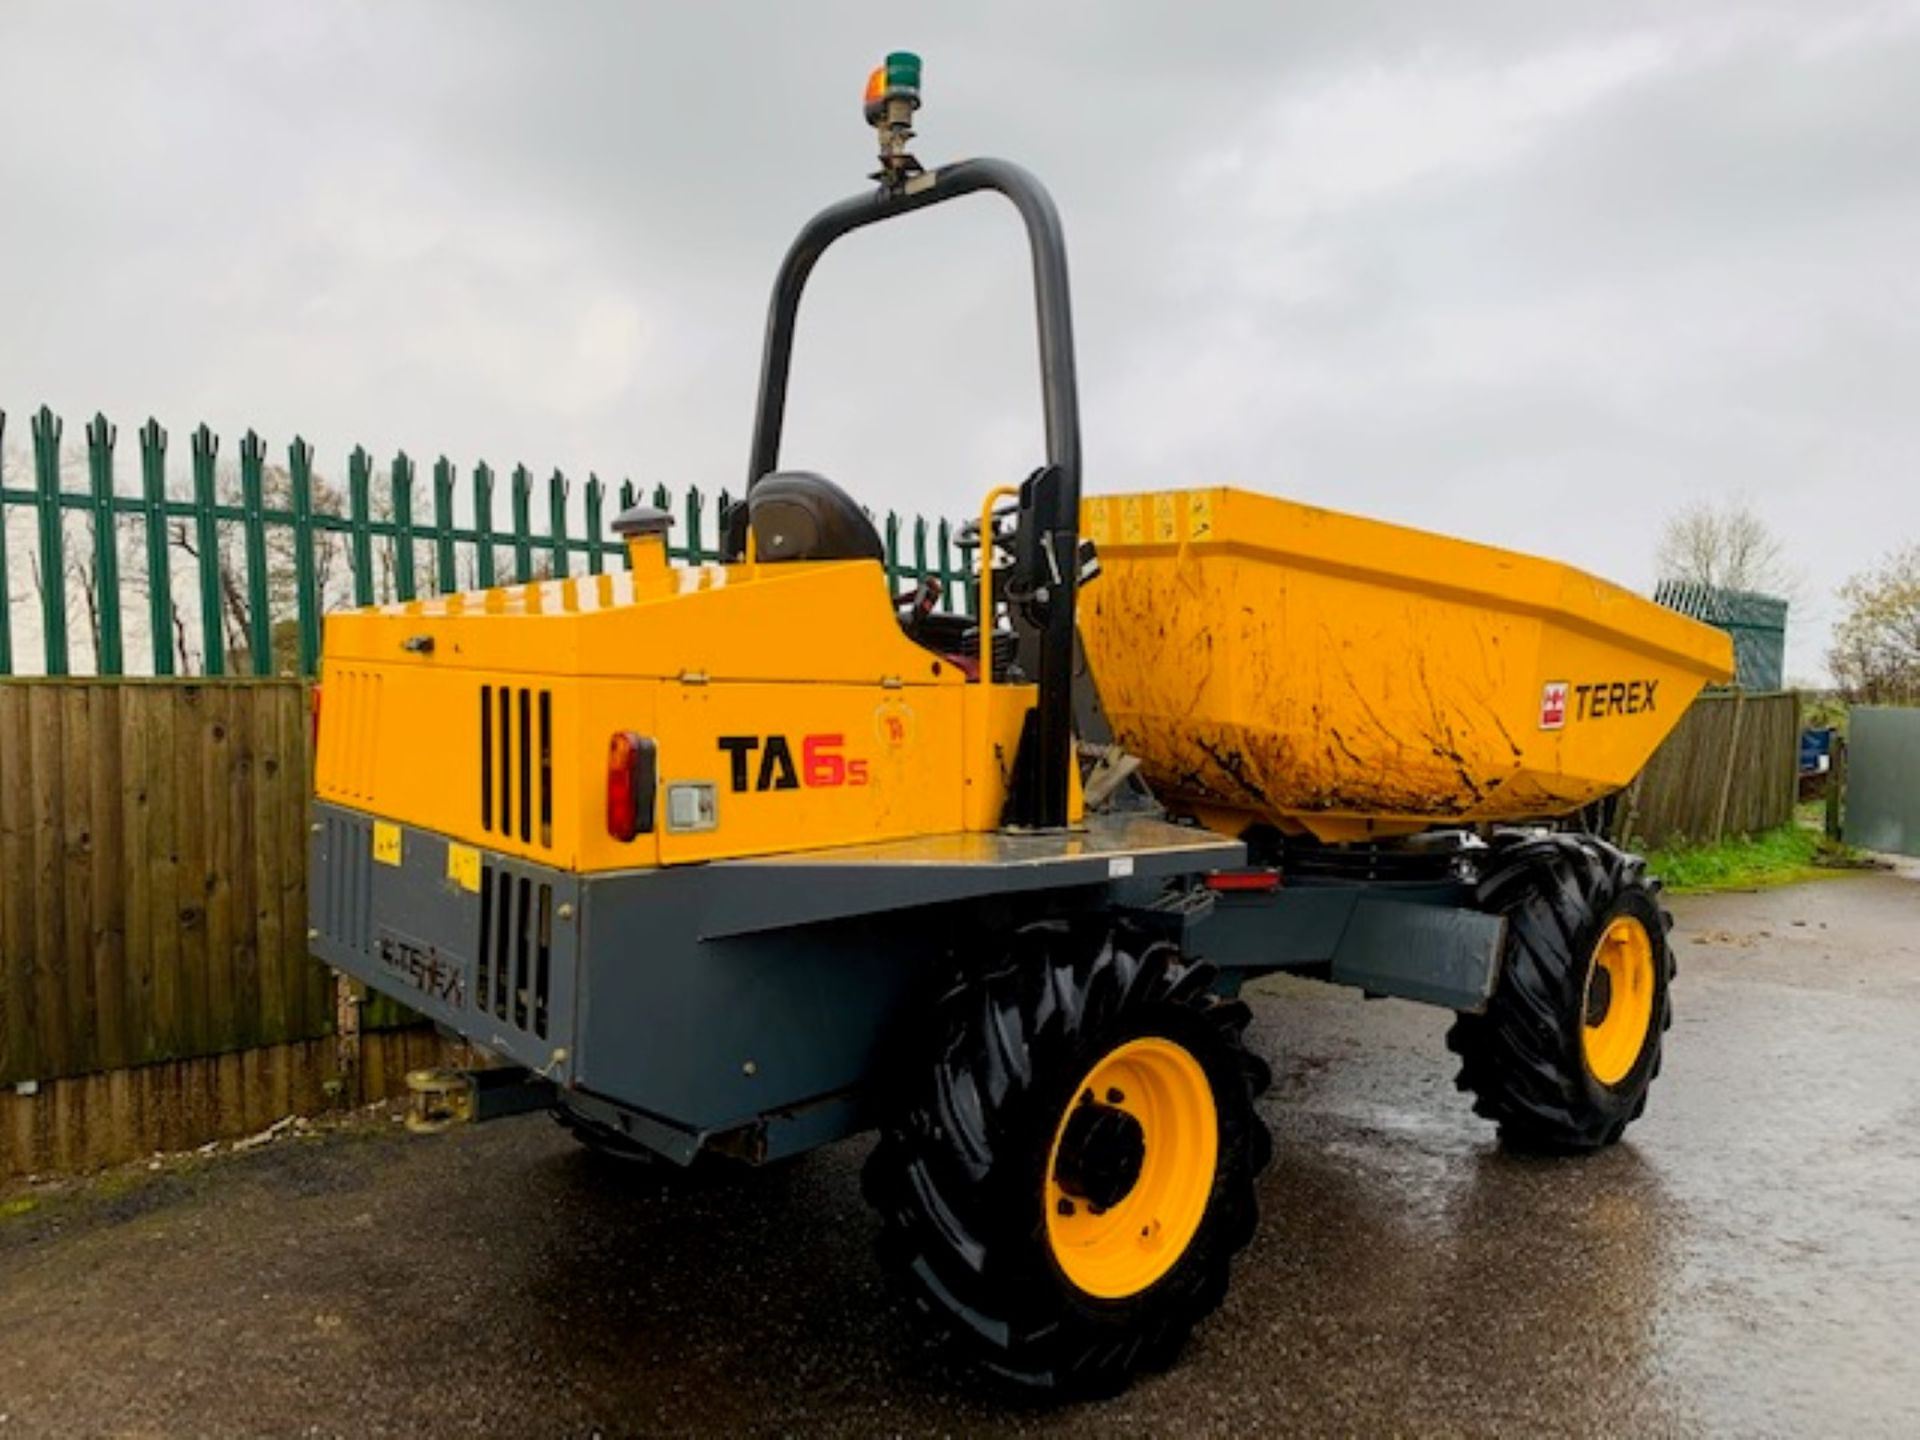 Lot 56 - TEREX TA6 S SWIVEL DUMPER, YEAR 2017, 680 HOURS, GOOD TYRES, ORANGE AND GREEN BEACONS, CE MARKED